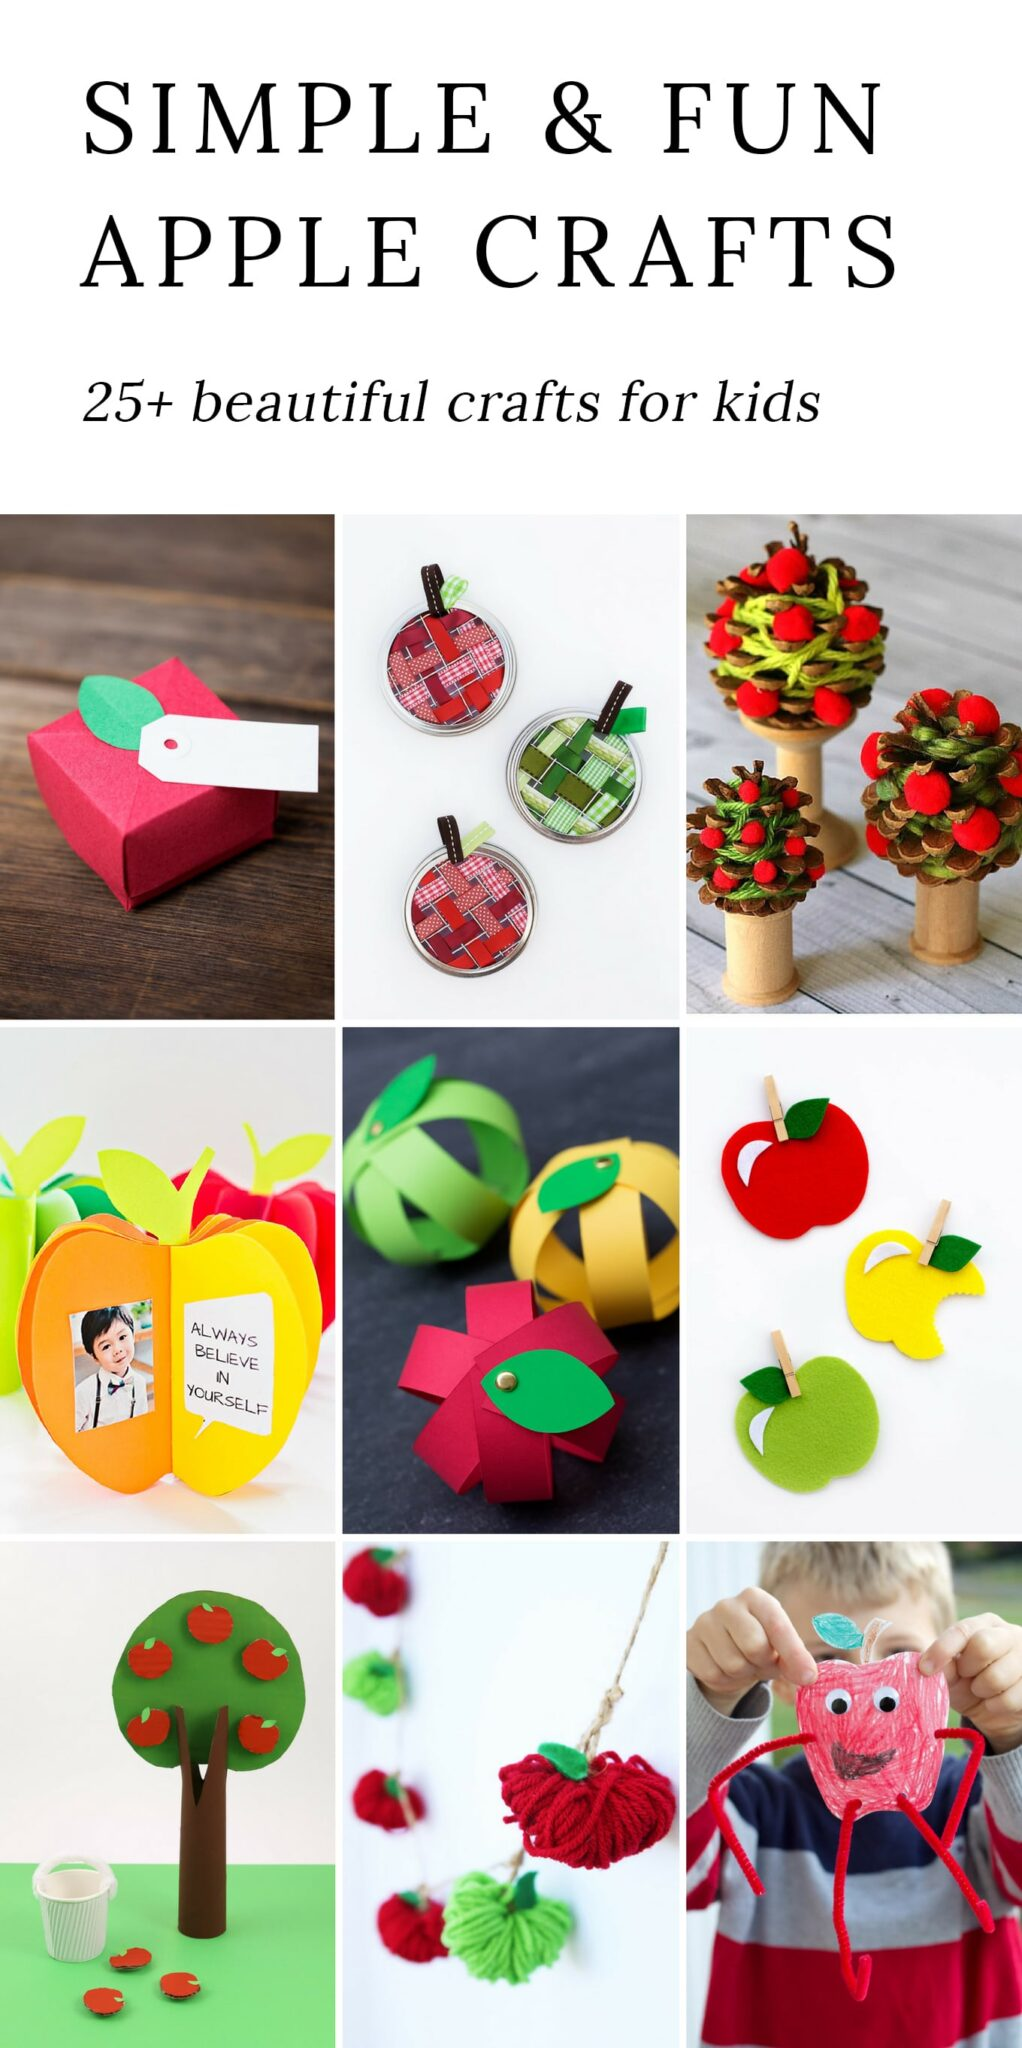 From paper to pine cones to mason jar rings, these creative apple crafts for kids are easy and fun for home, school, or camp.